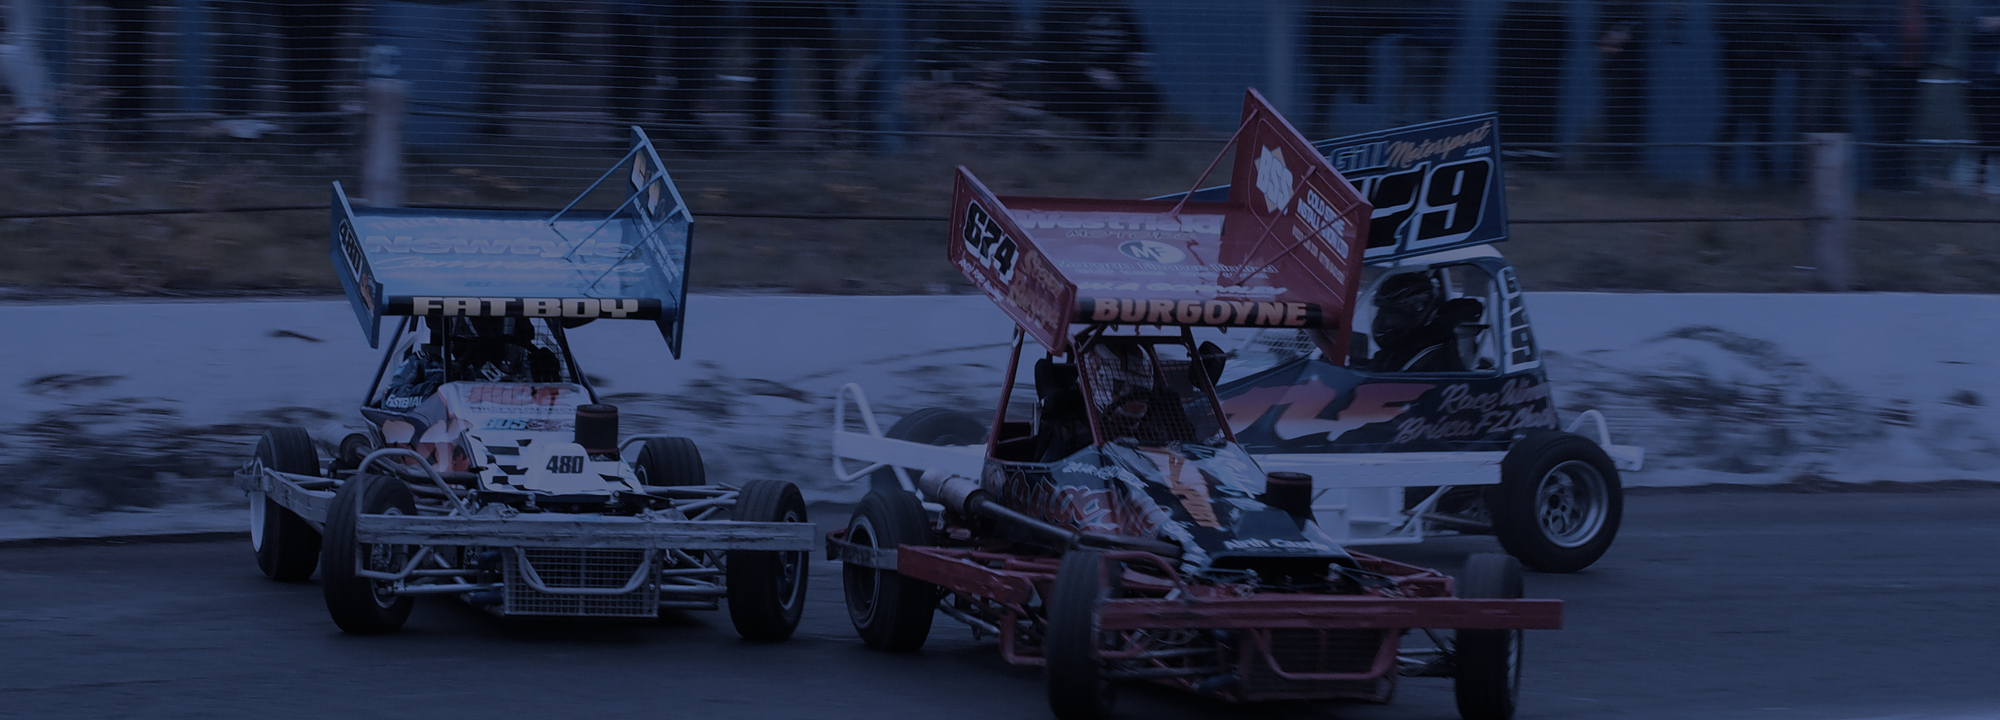 BriSCA F2 WCQR, Saloon Stock Cars, Stock Rods & Prostock Basics